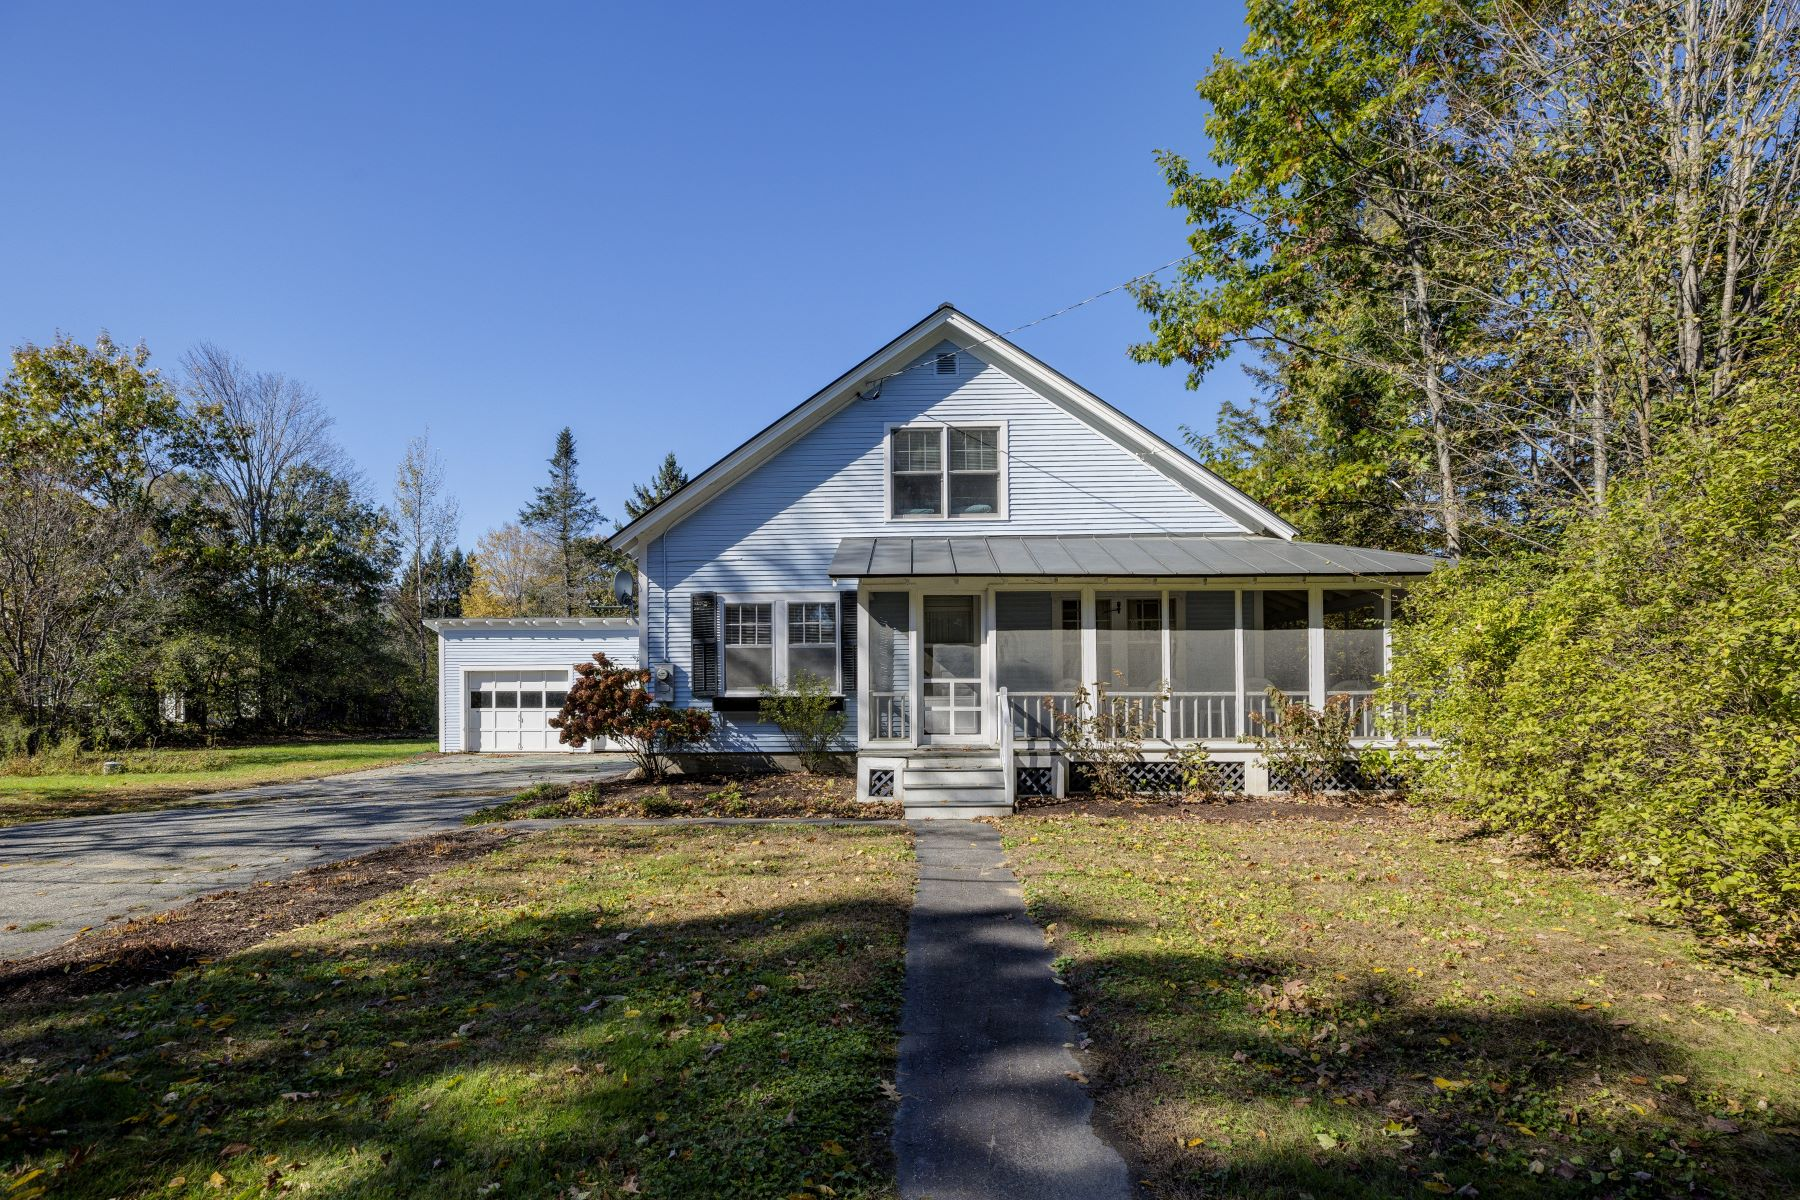 Single Family Home for Sale at 97 Lakeshore Road, Thetford 97 Lakeshore Rd Thetford, Vermont 05074 United States